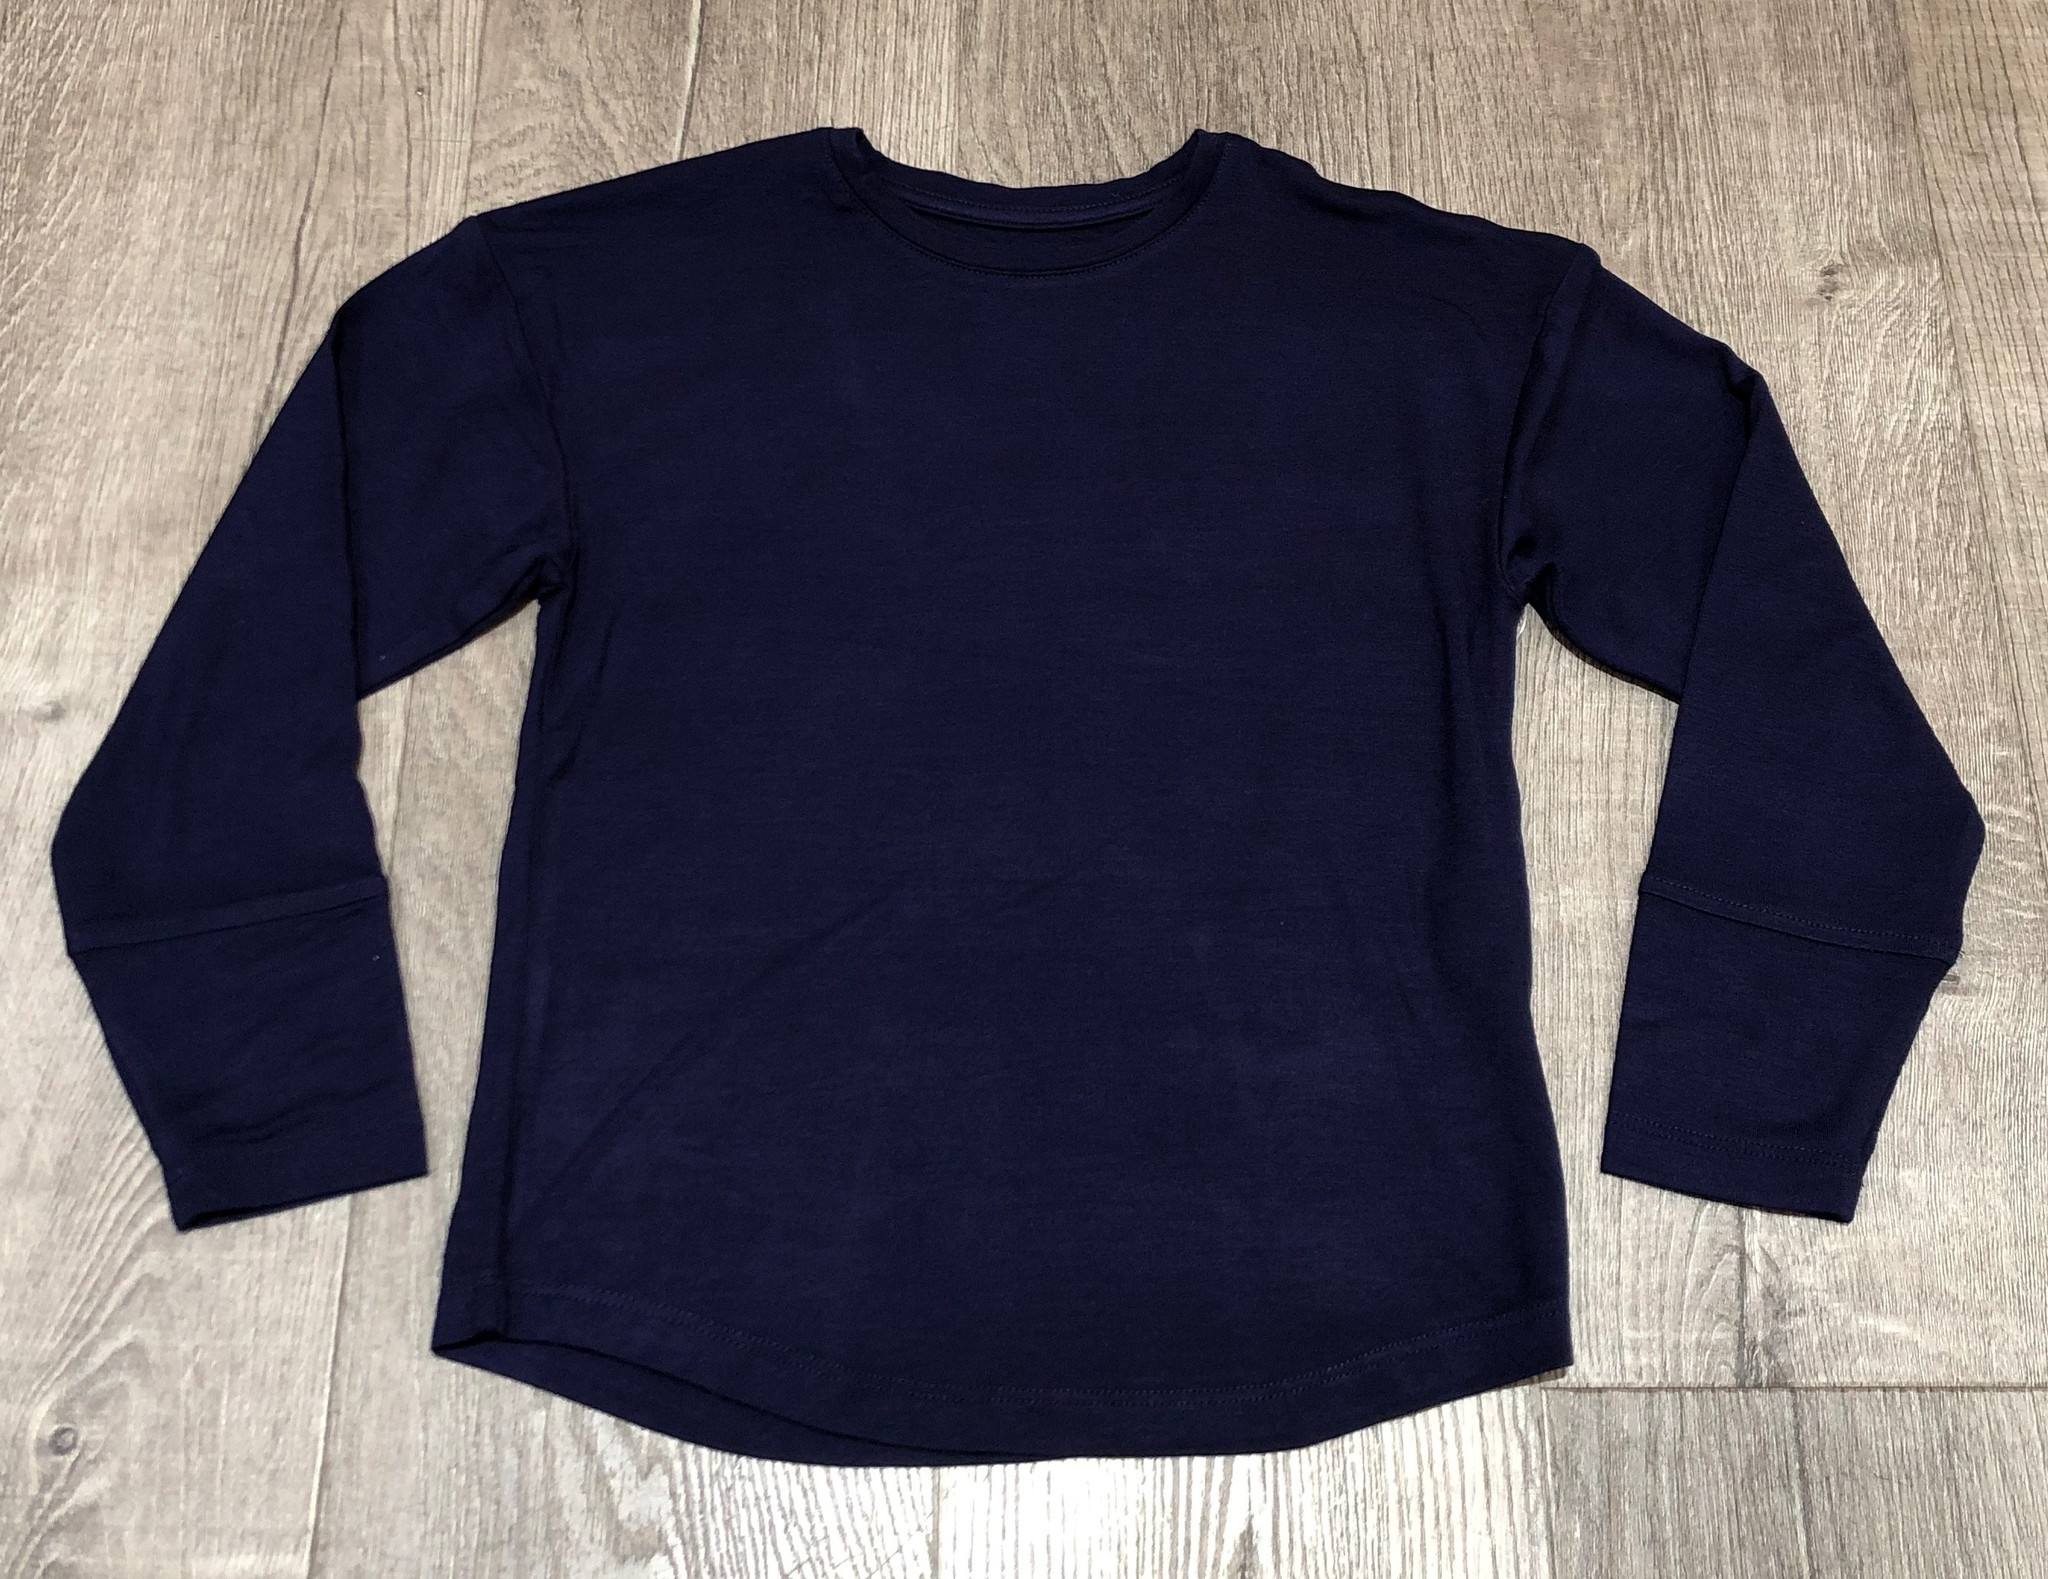 Candy Pink W20631 Long Sleeve Yoga Top, Navy